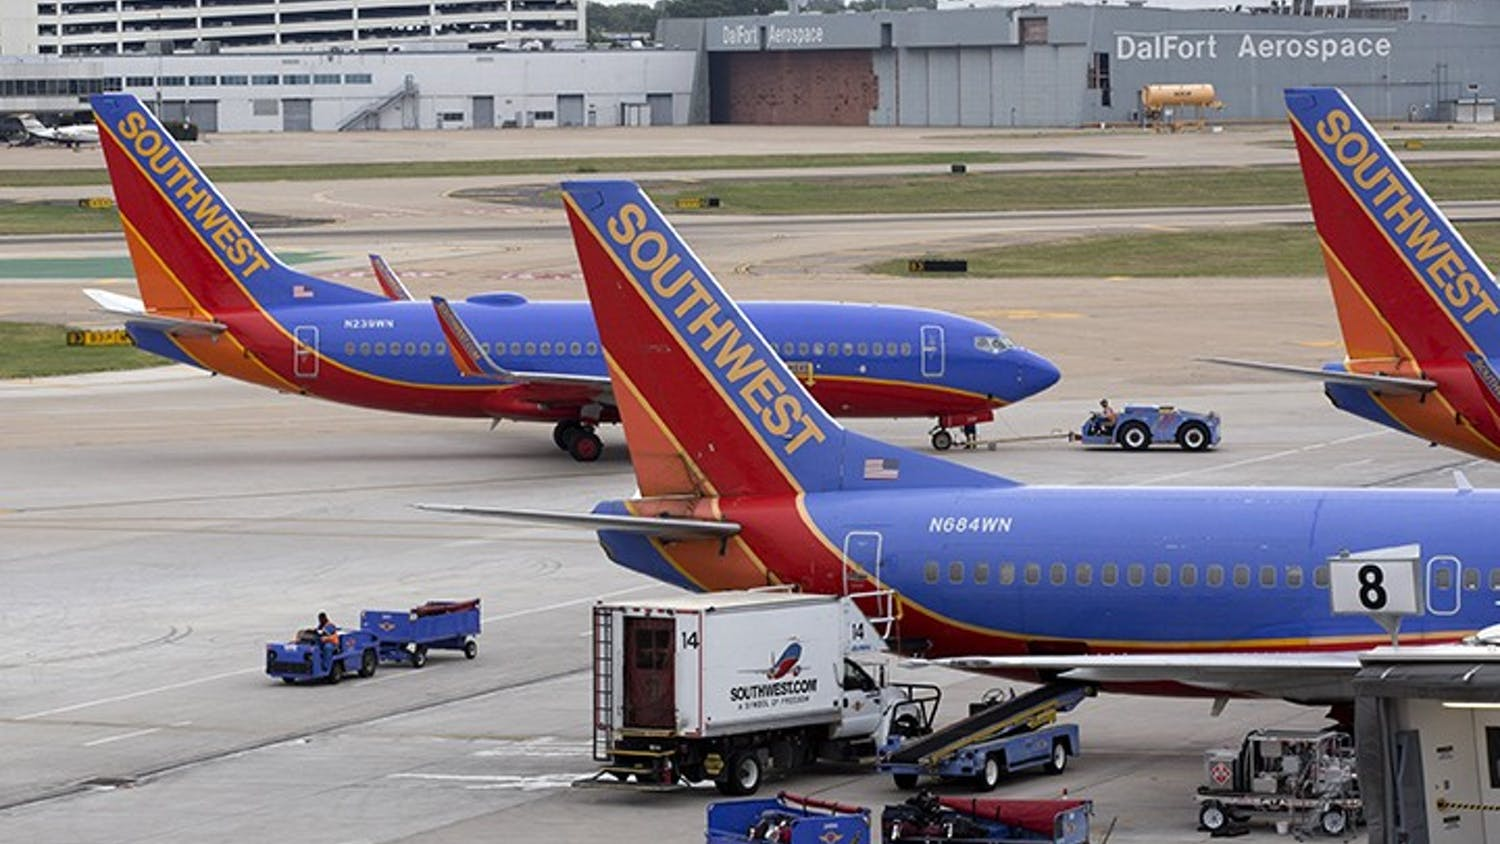 Southwest Airlines is ready to celebrate its first minute of freedom from the Wright Amendment at Dallas Love Field, even though it's a year away. The Dallas-based airline is unveiling a countdown clock today at its headquarters, reminding employees, passengers and North Texans that starting on Oct. 13, 2014, it will be able to fly nonstop anywhere in the U.S. from its Love Field home. (Joyce Marshall/Fort Worth Star-Telegram/MCT)